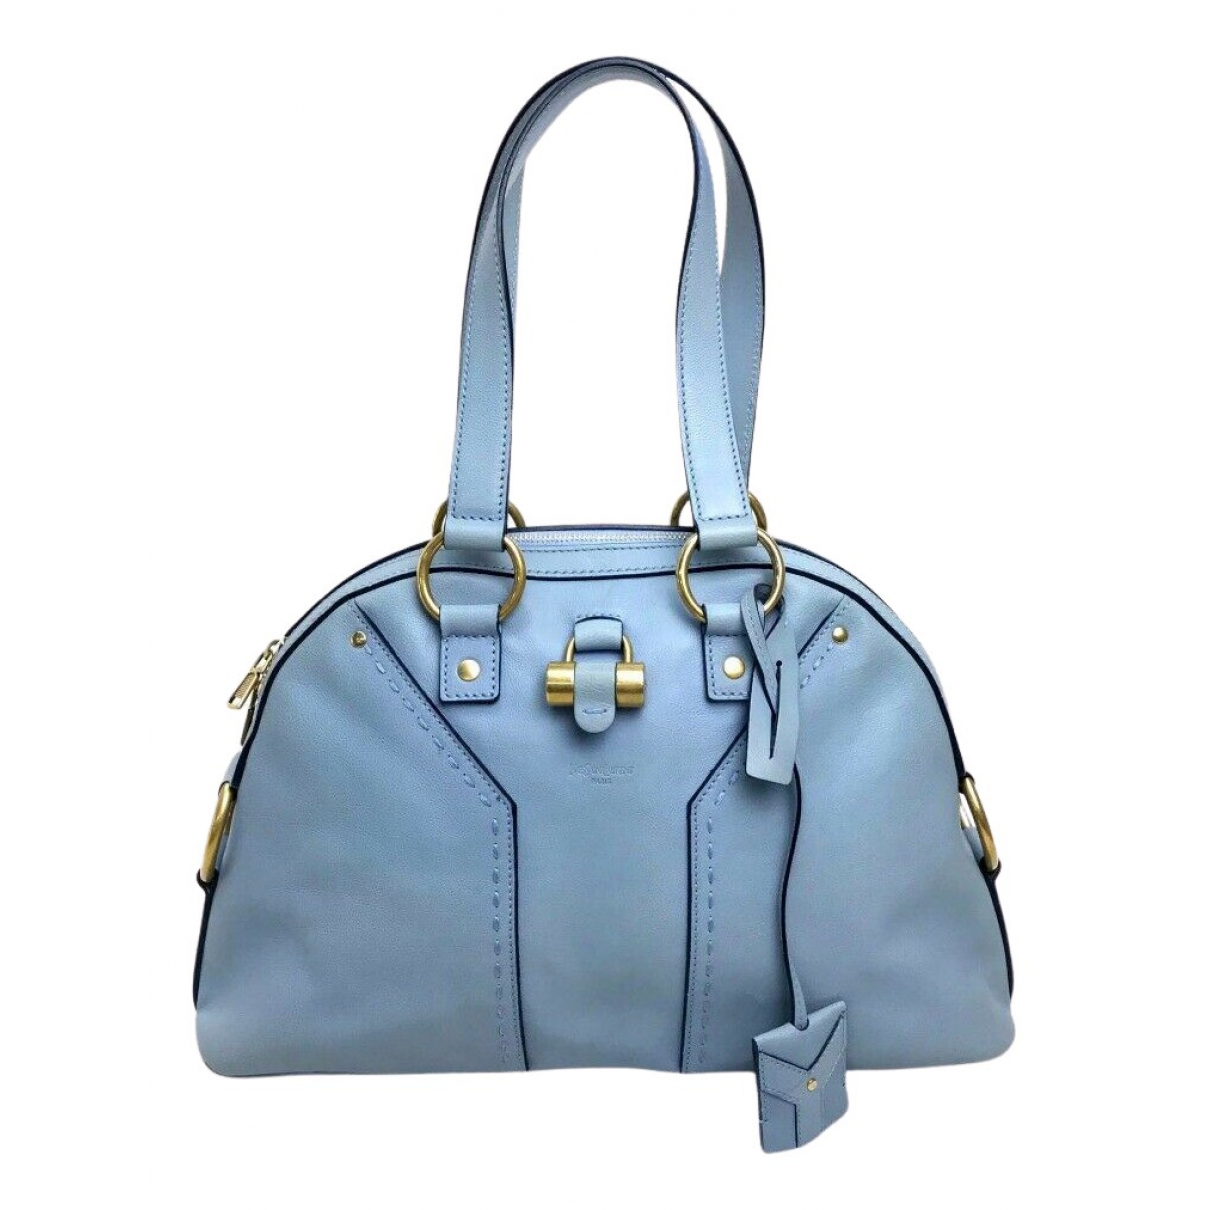 Yves Saint Laurent Muse Blue Leather handbag for Women N